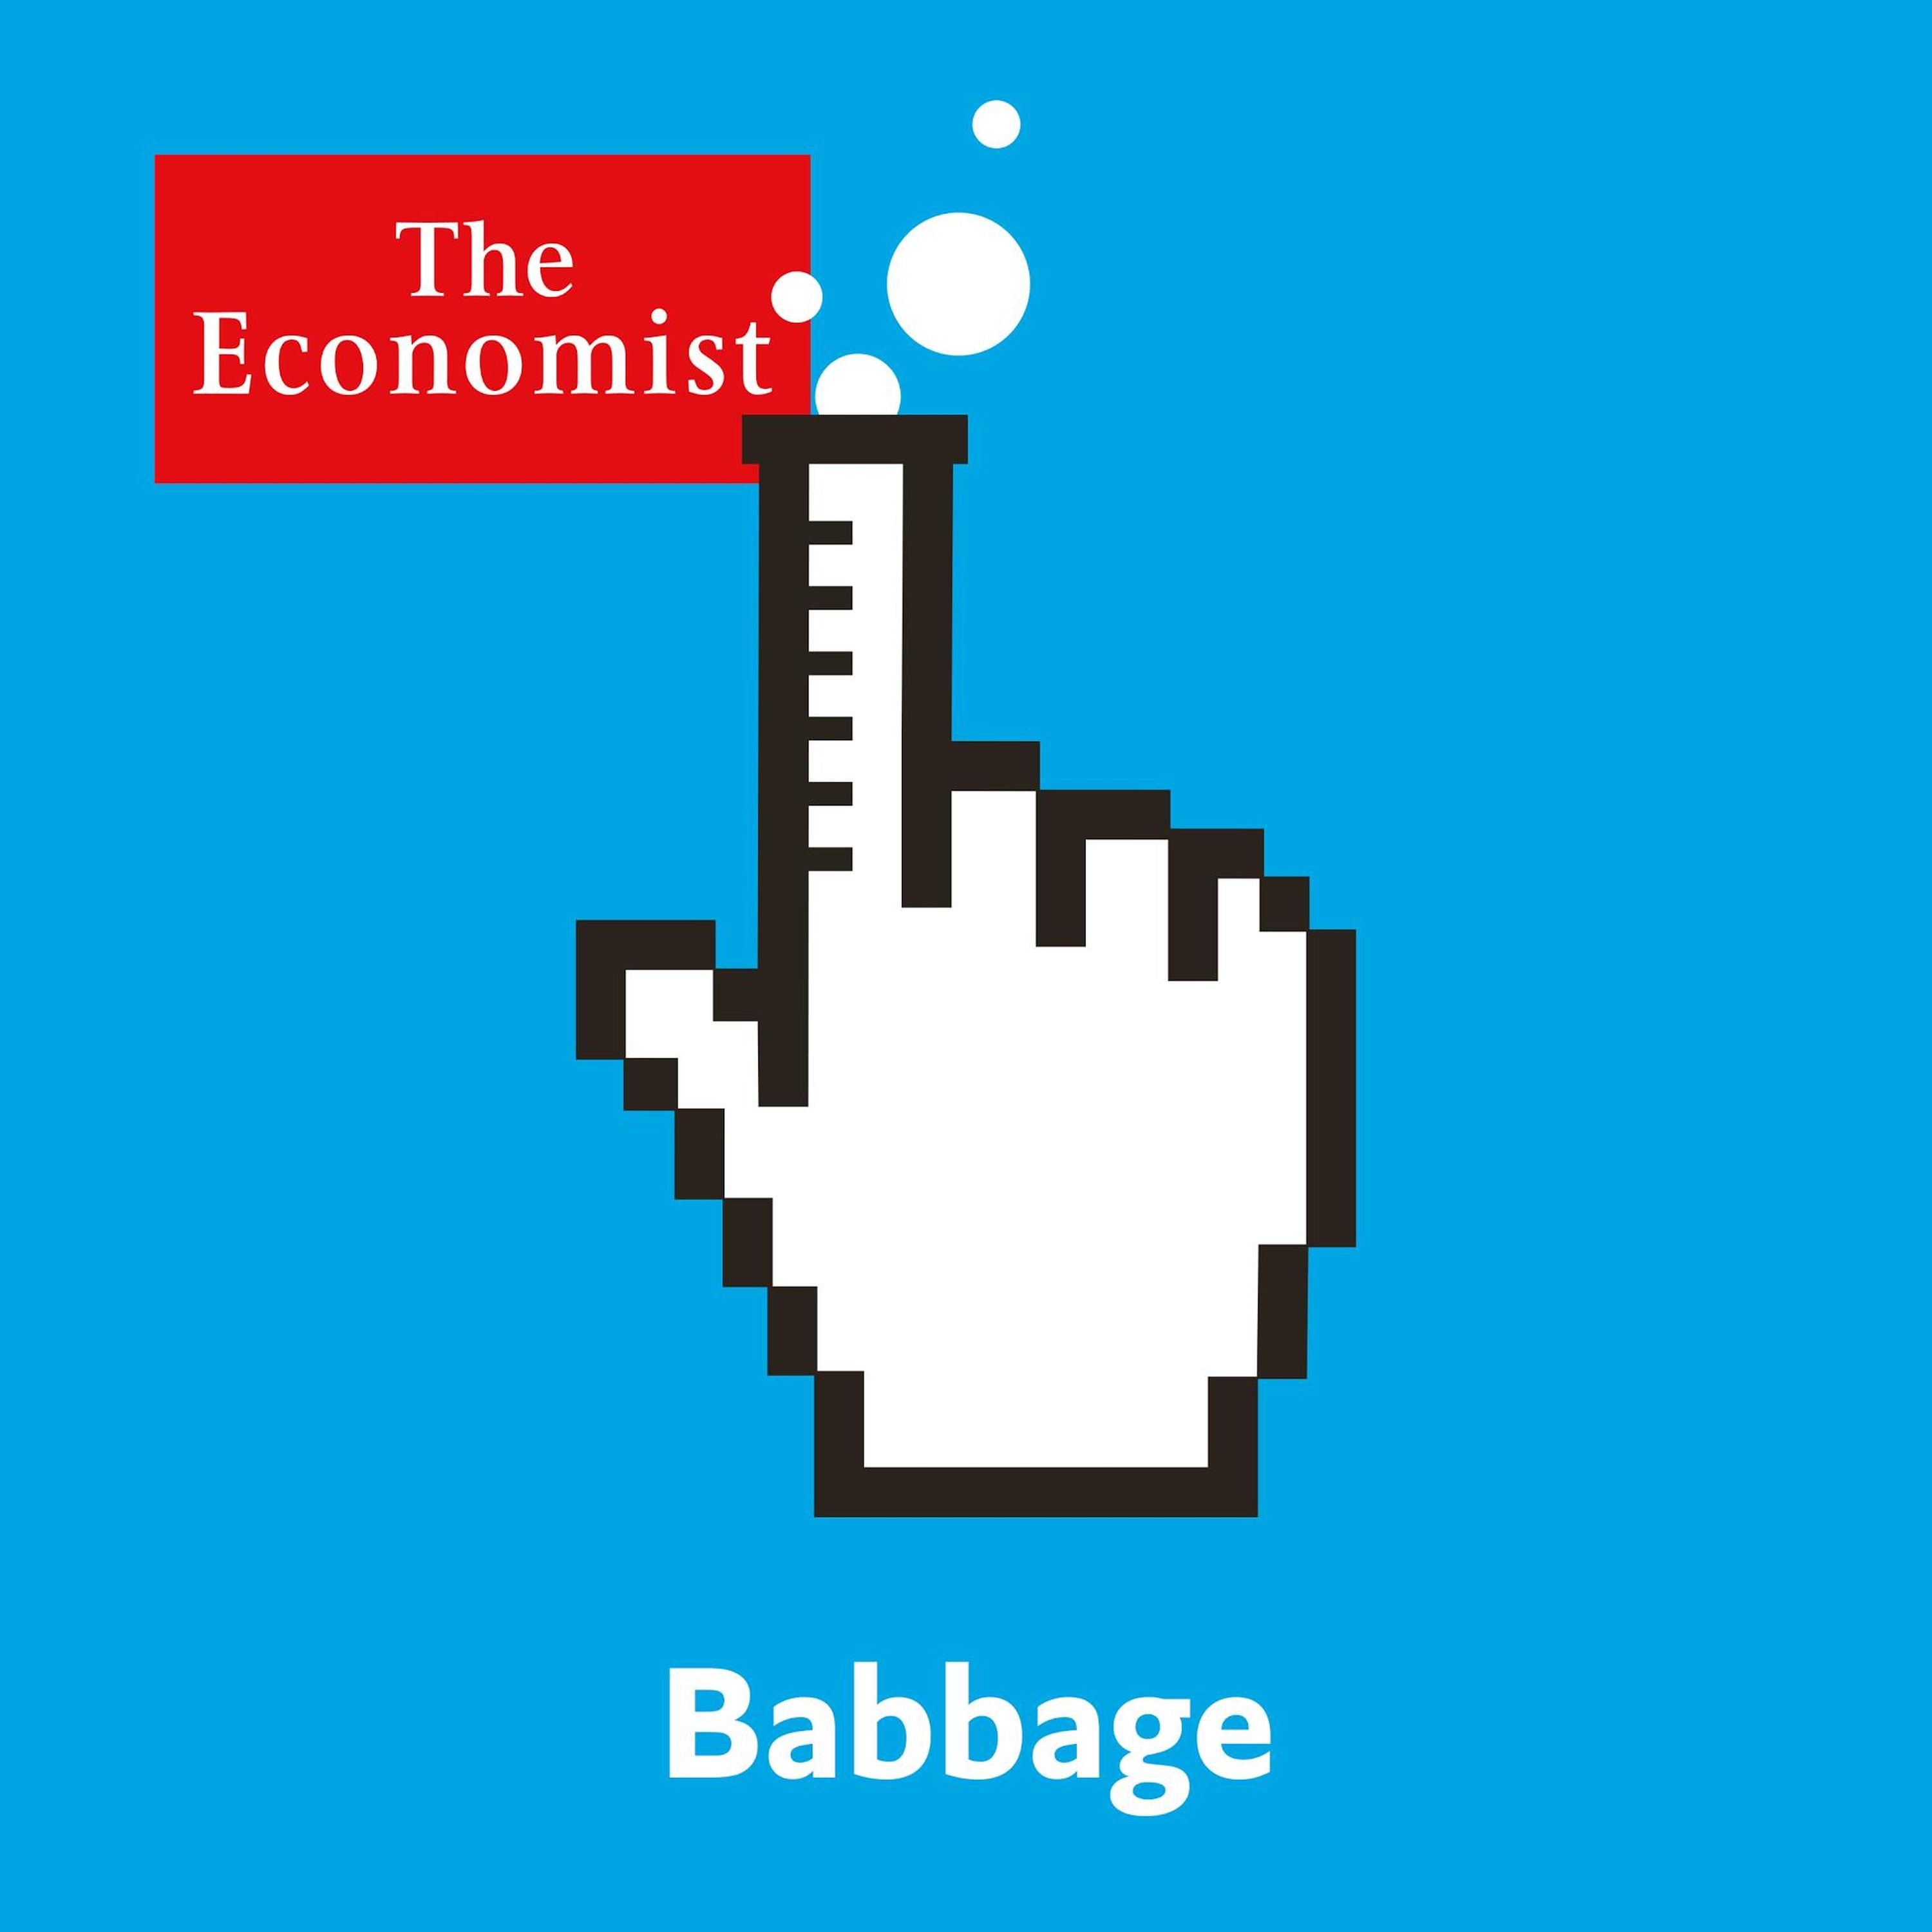 Babbage: The promise and peril of AI